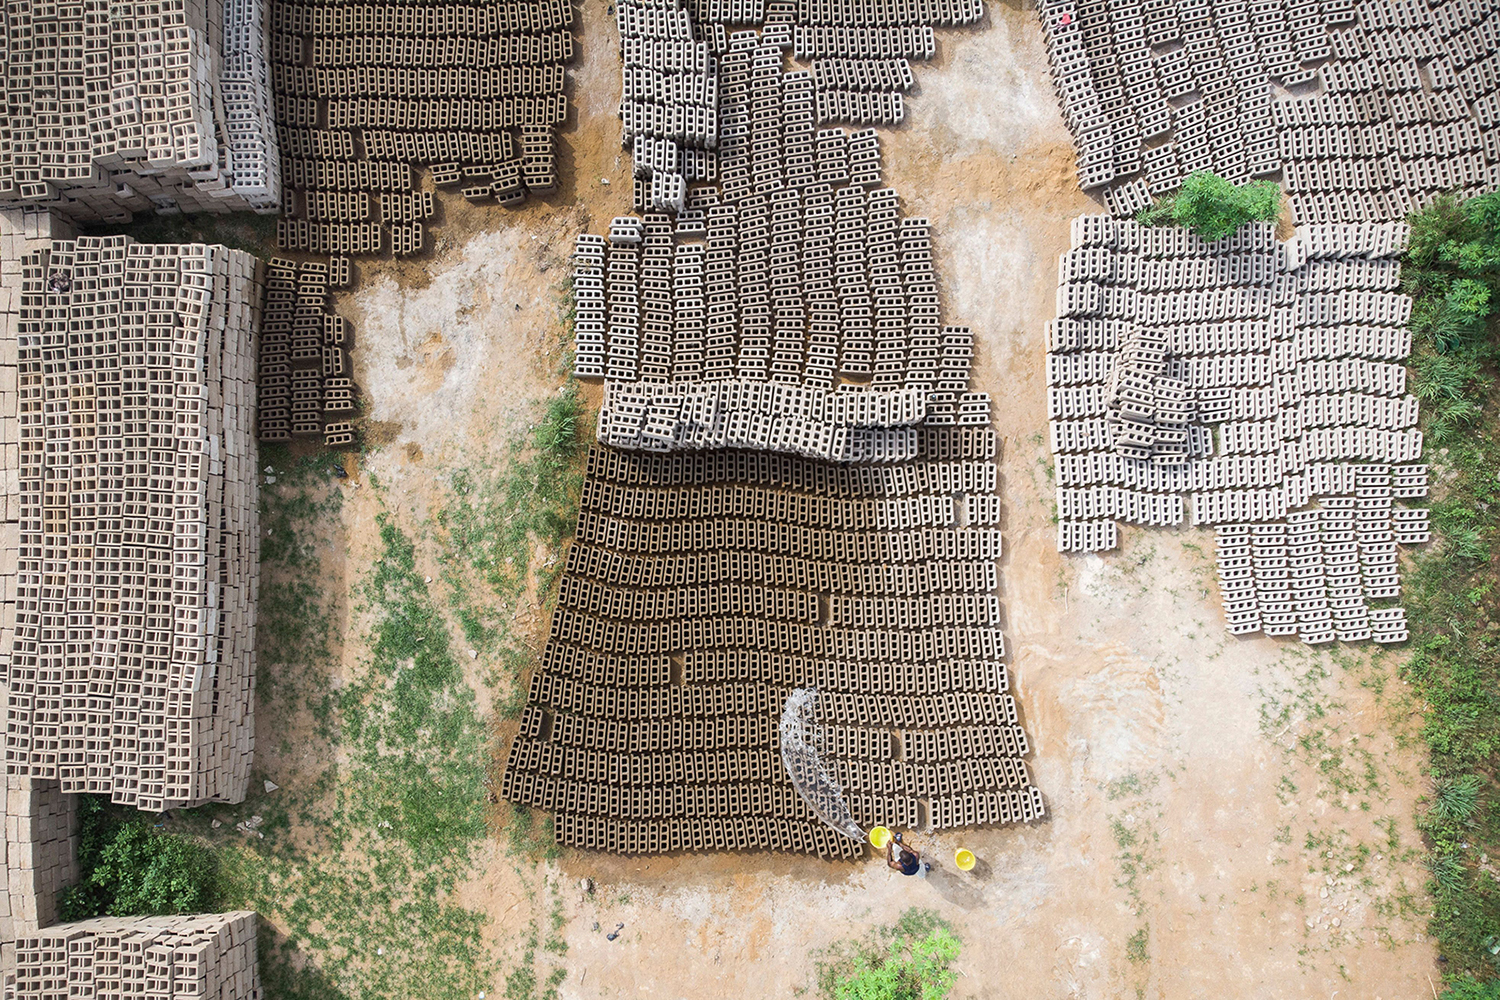 A Malian worker pours water on sun-dried bricks made from river sand at a factory in Bamako on Oct. 9. MICHELE CATTANI/AFP/Getty Images